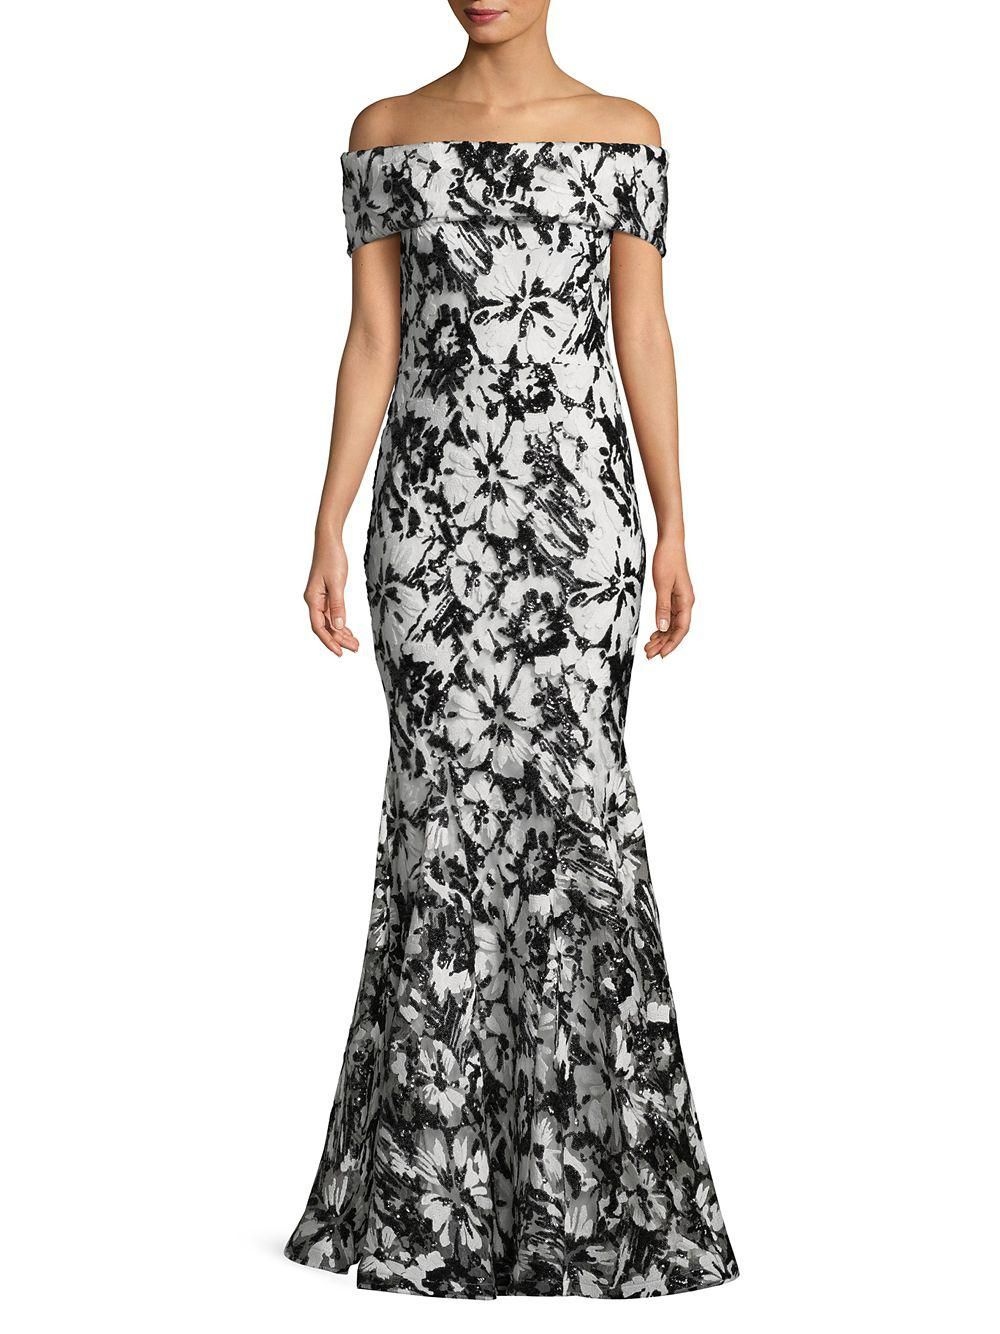 fdb914723923b Nicole Bakti Beaded Floral Lace Off-shoulder Gown in Black - Lyst